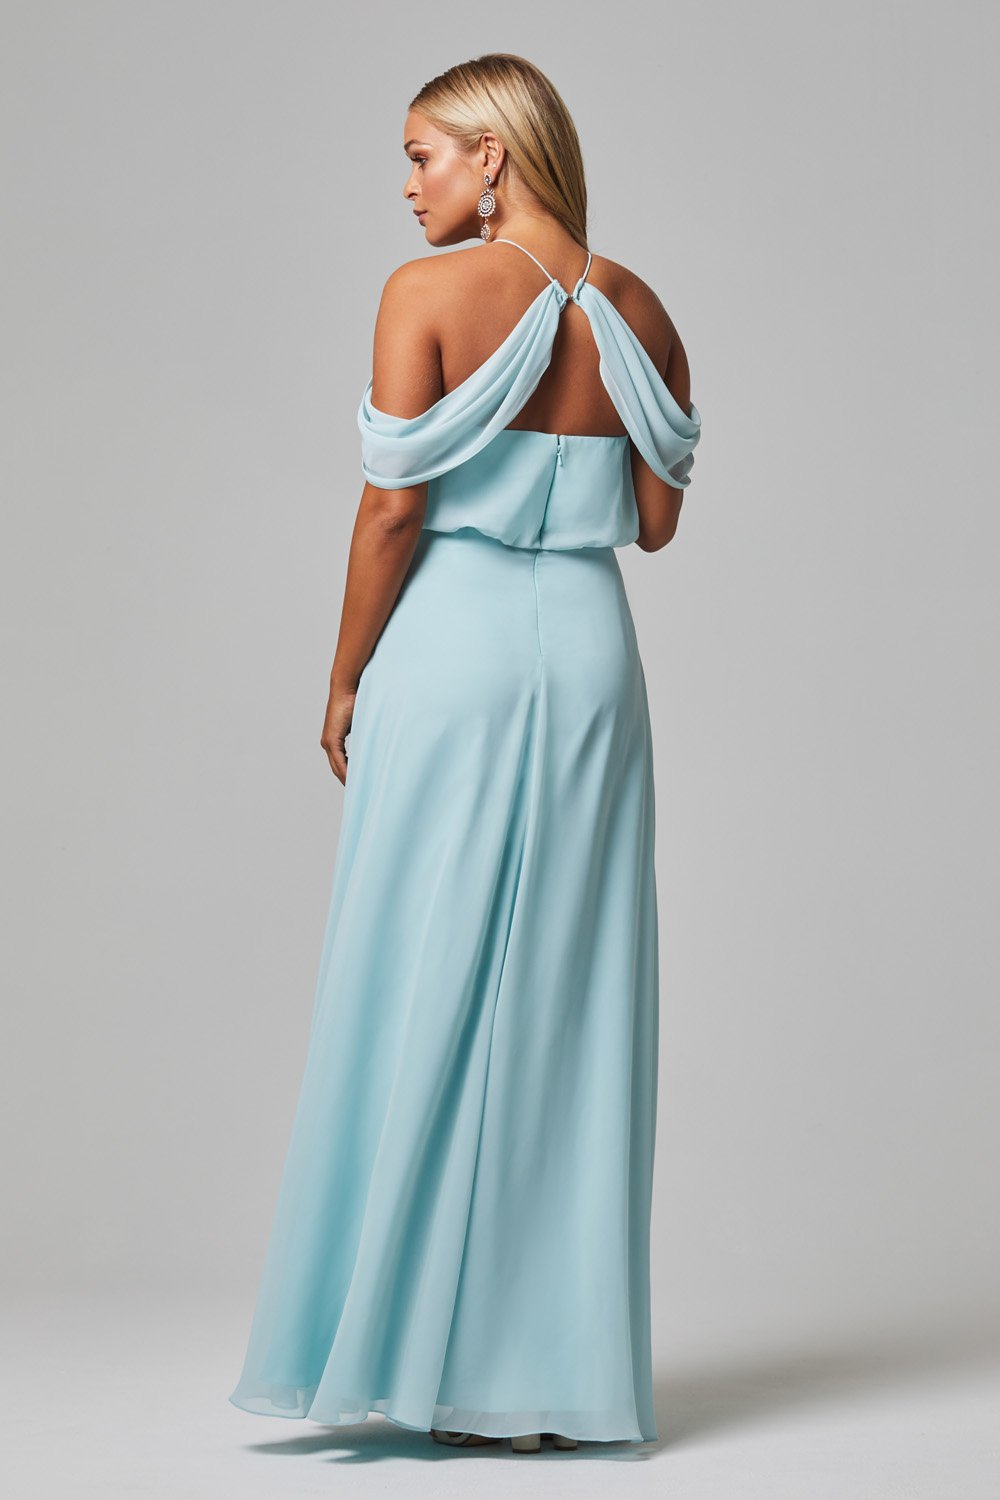 Kassidy Bridesmaids Dress by Tania Olsen - Pastel Blue